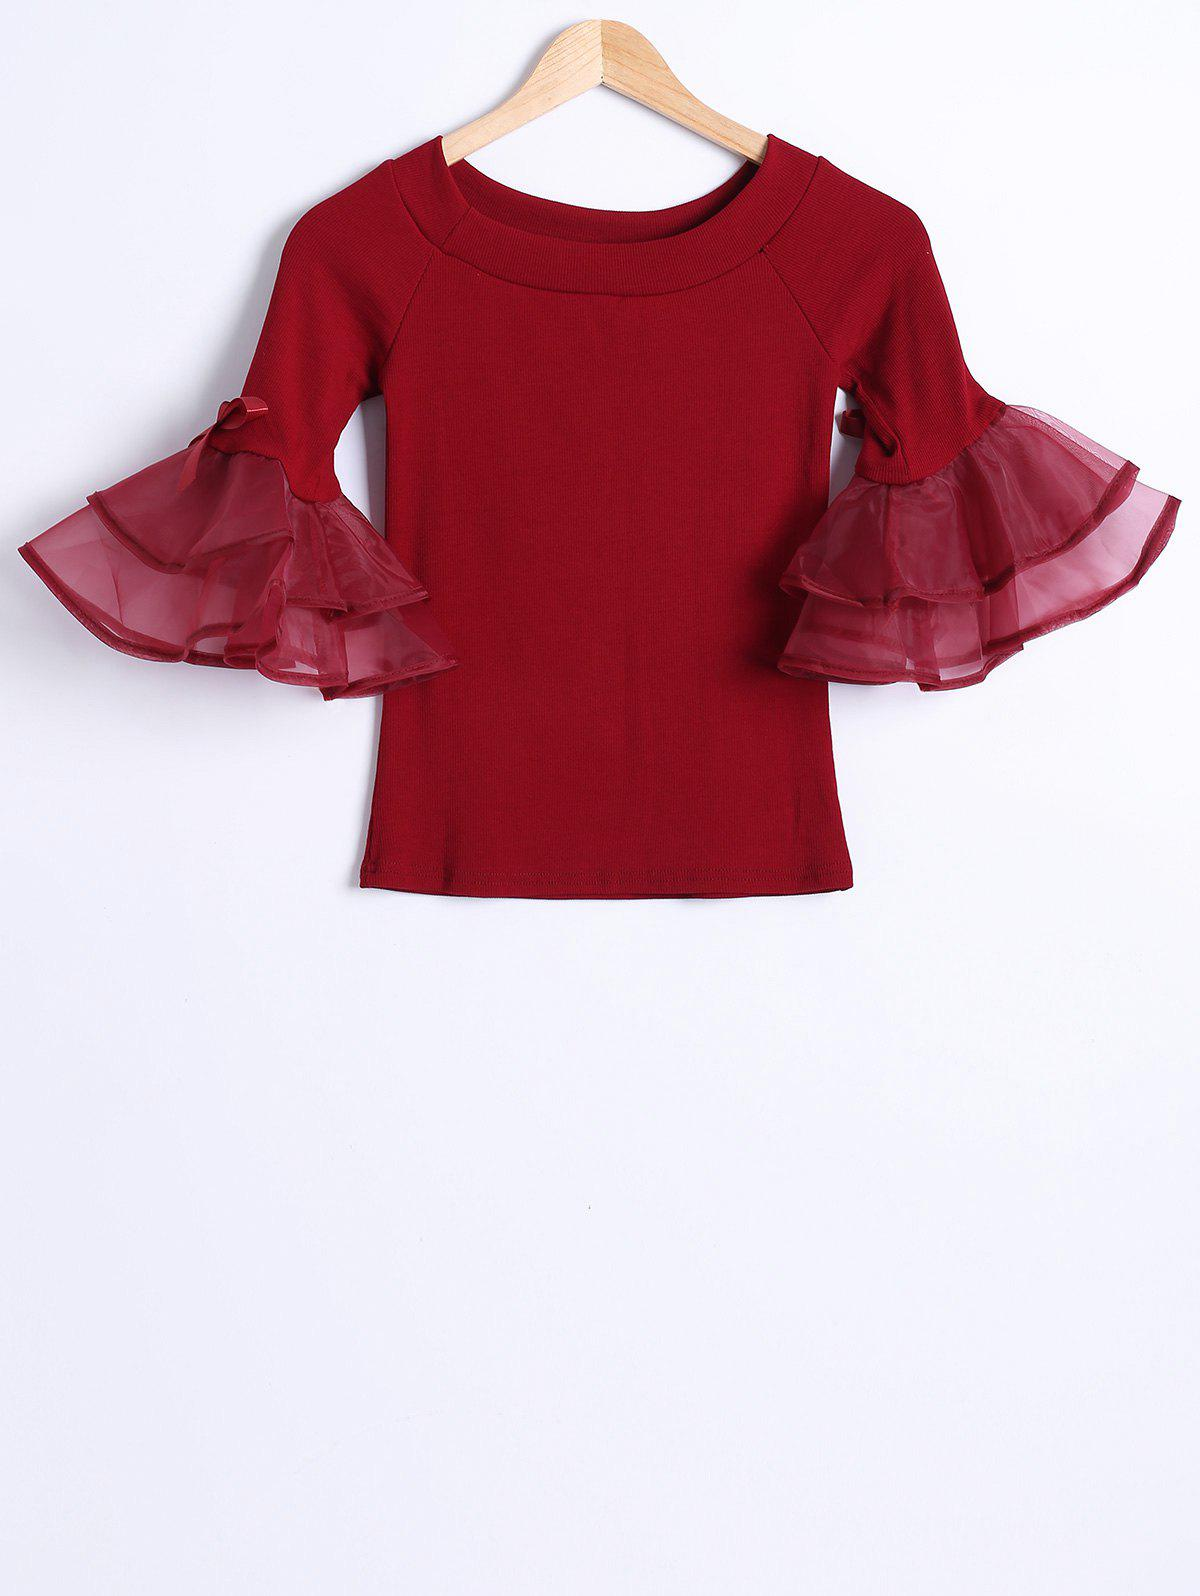 Organza Splicing Bell Sleeve Short T-ShirtWomen<br><br><br>Size: ONE SIZE(FIT SIZE XS TO M)<br>Color: WINE RED